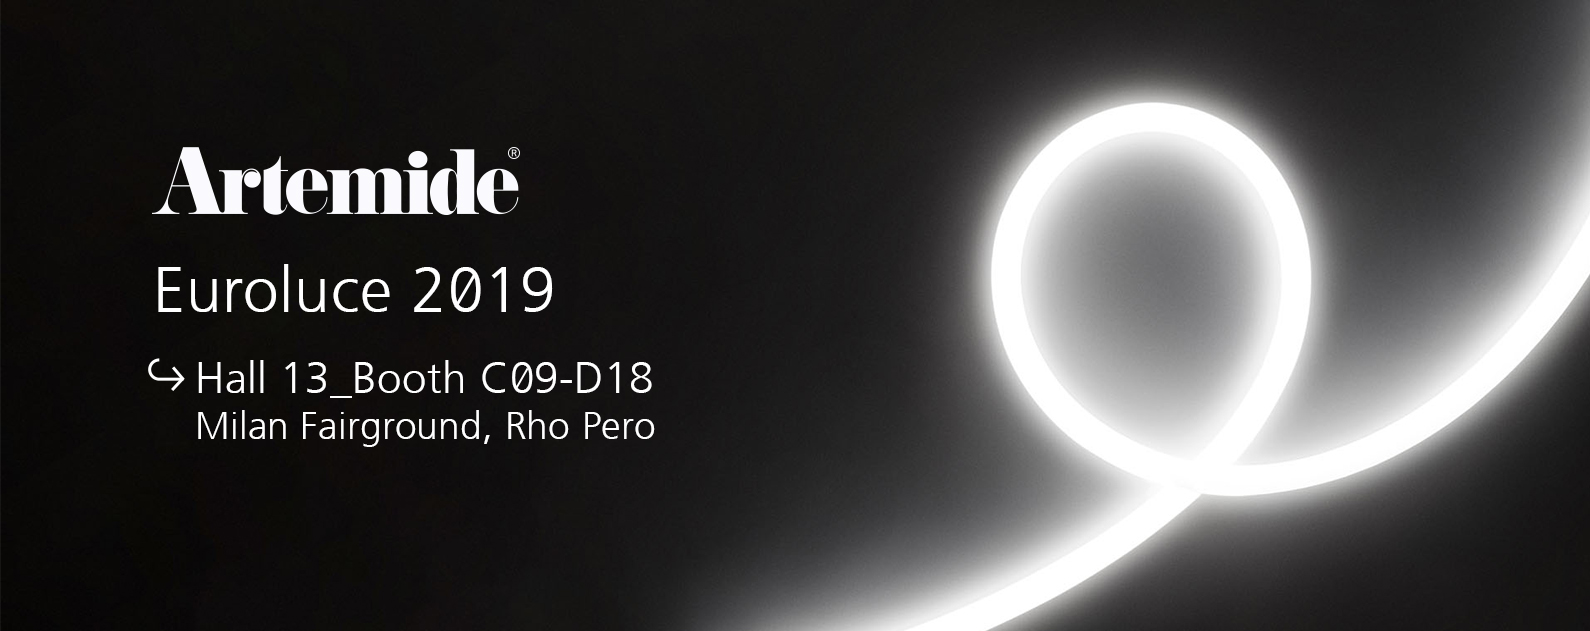 Visit Artemide at Euroluce, part of the Salone del Mobile in Milan